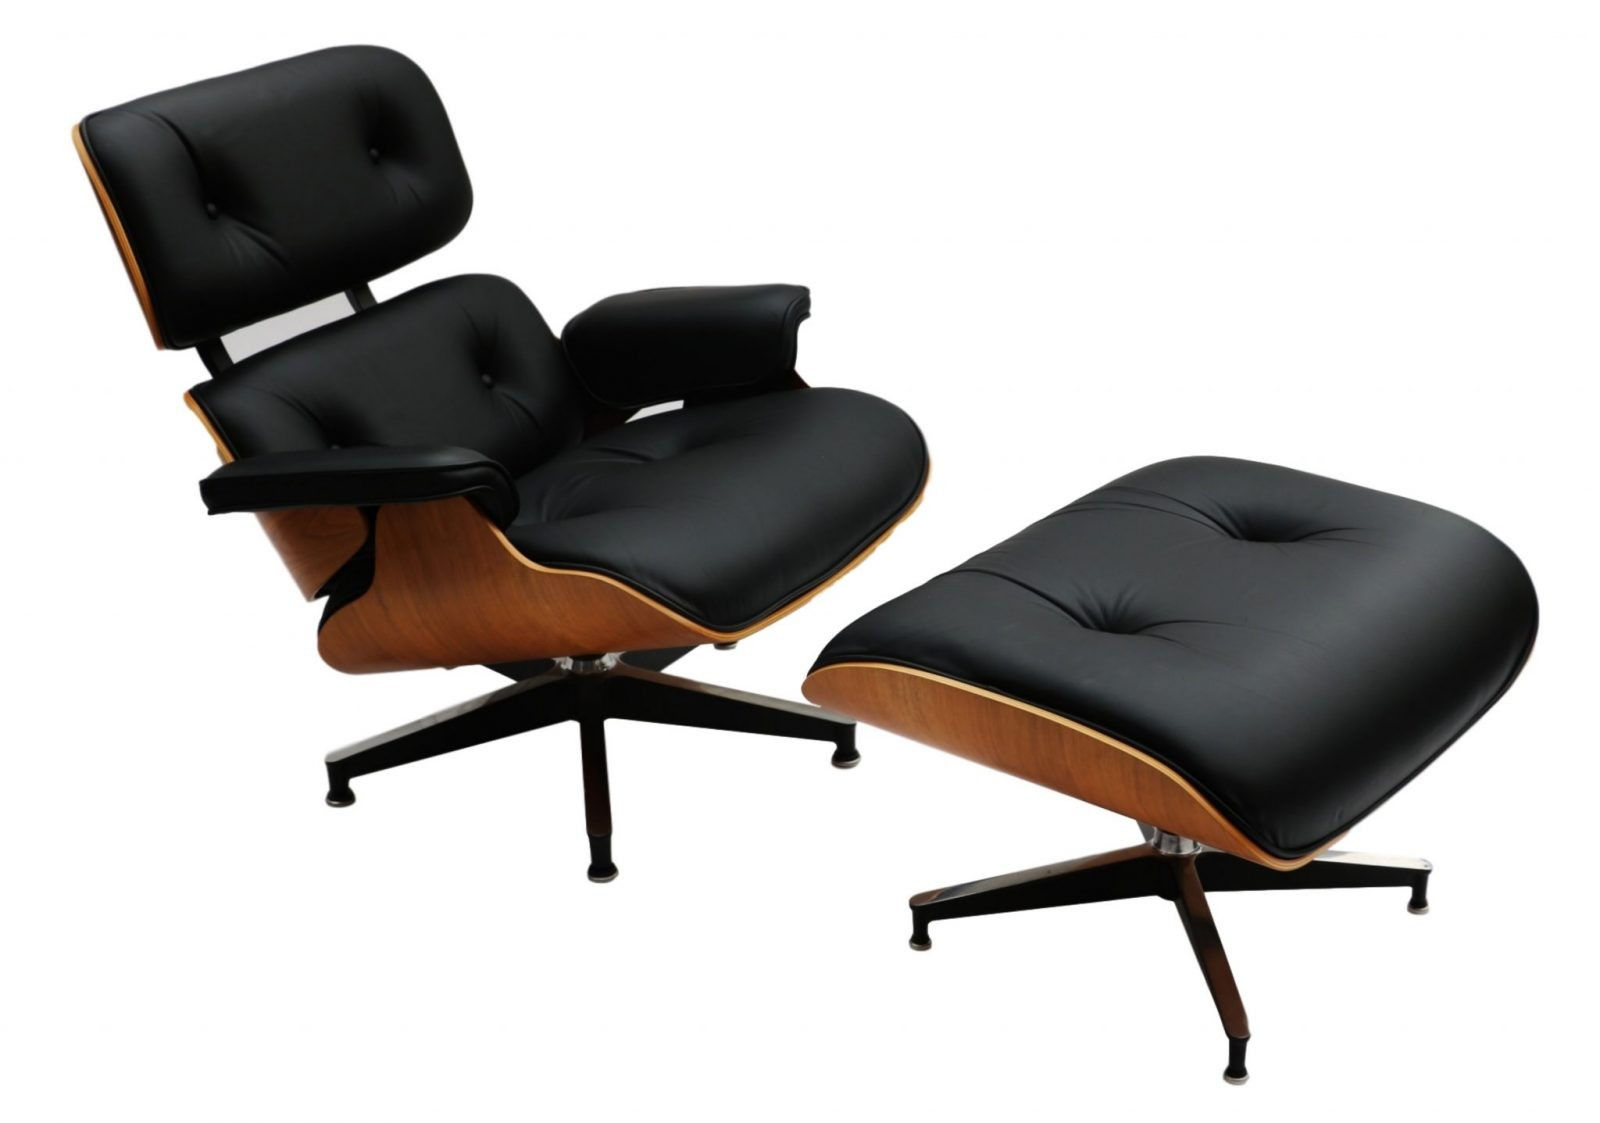 Lounge Sessel Eames Eames Lounge Sessel Eames Lounge Sessel With Eames Lounge